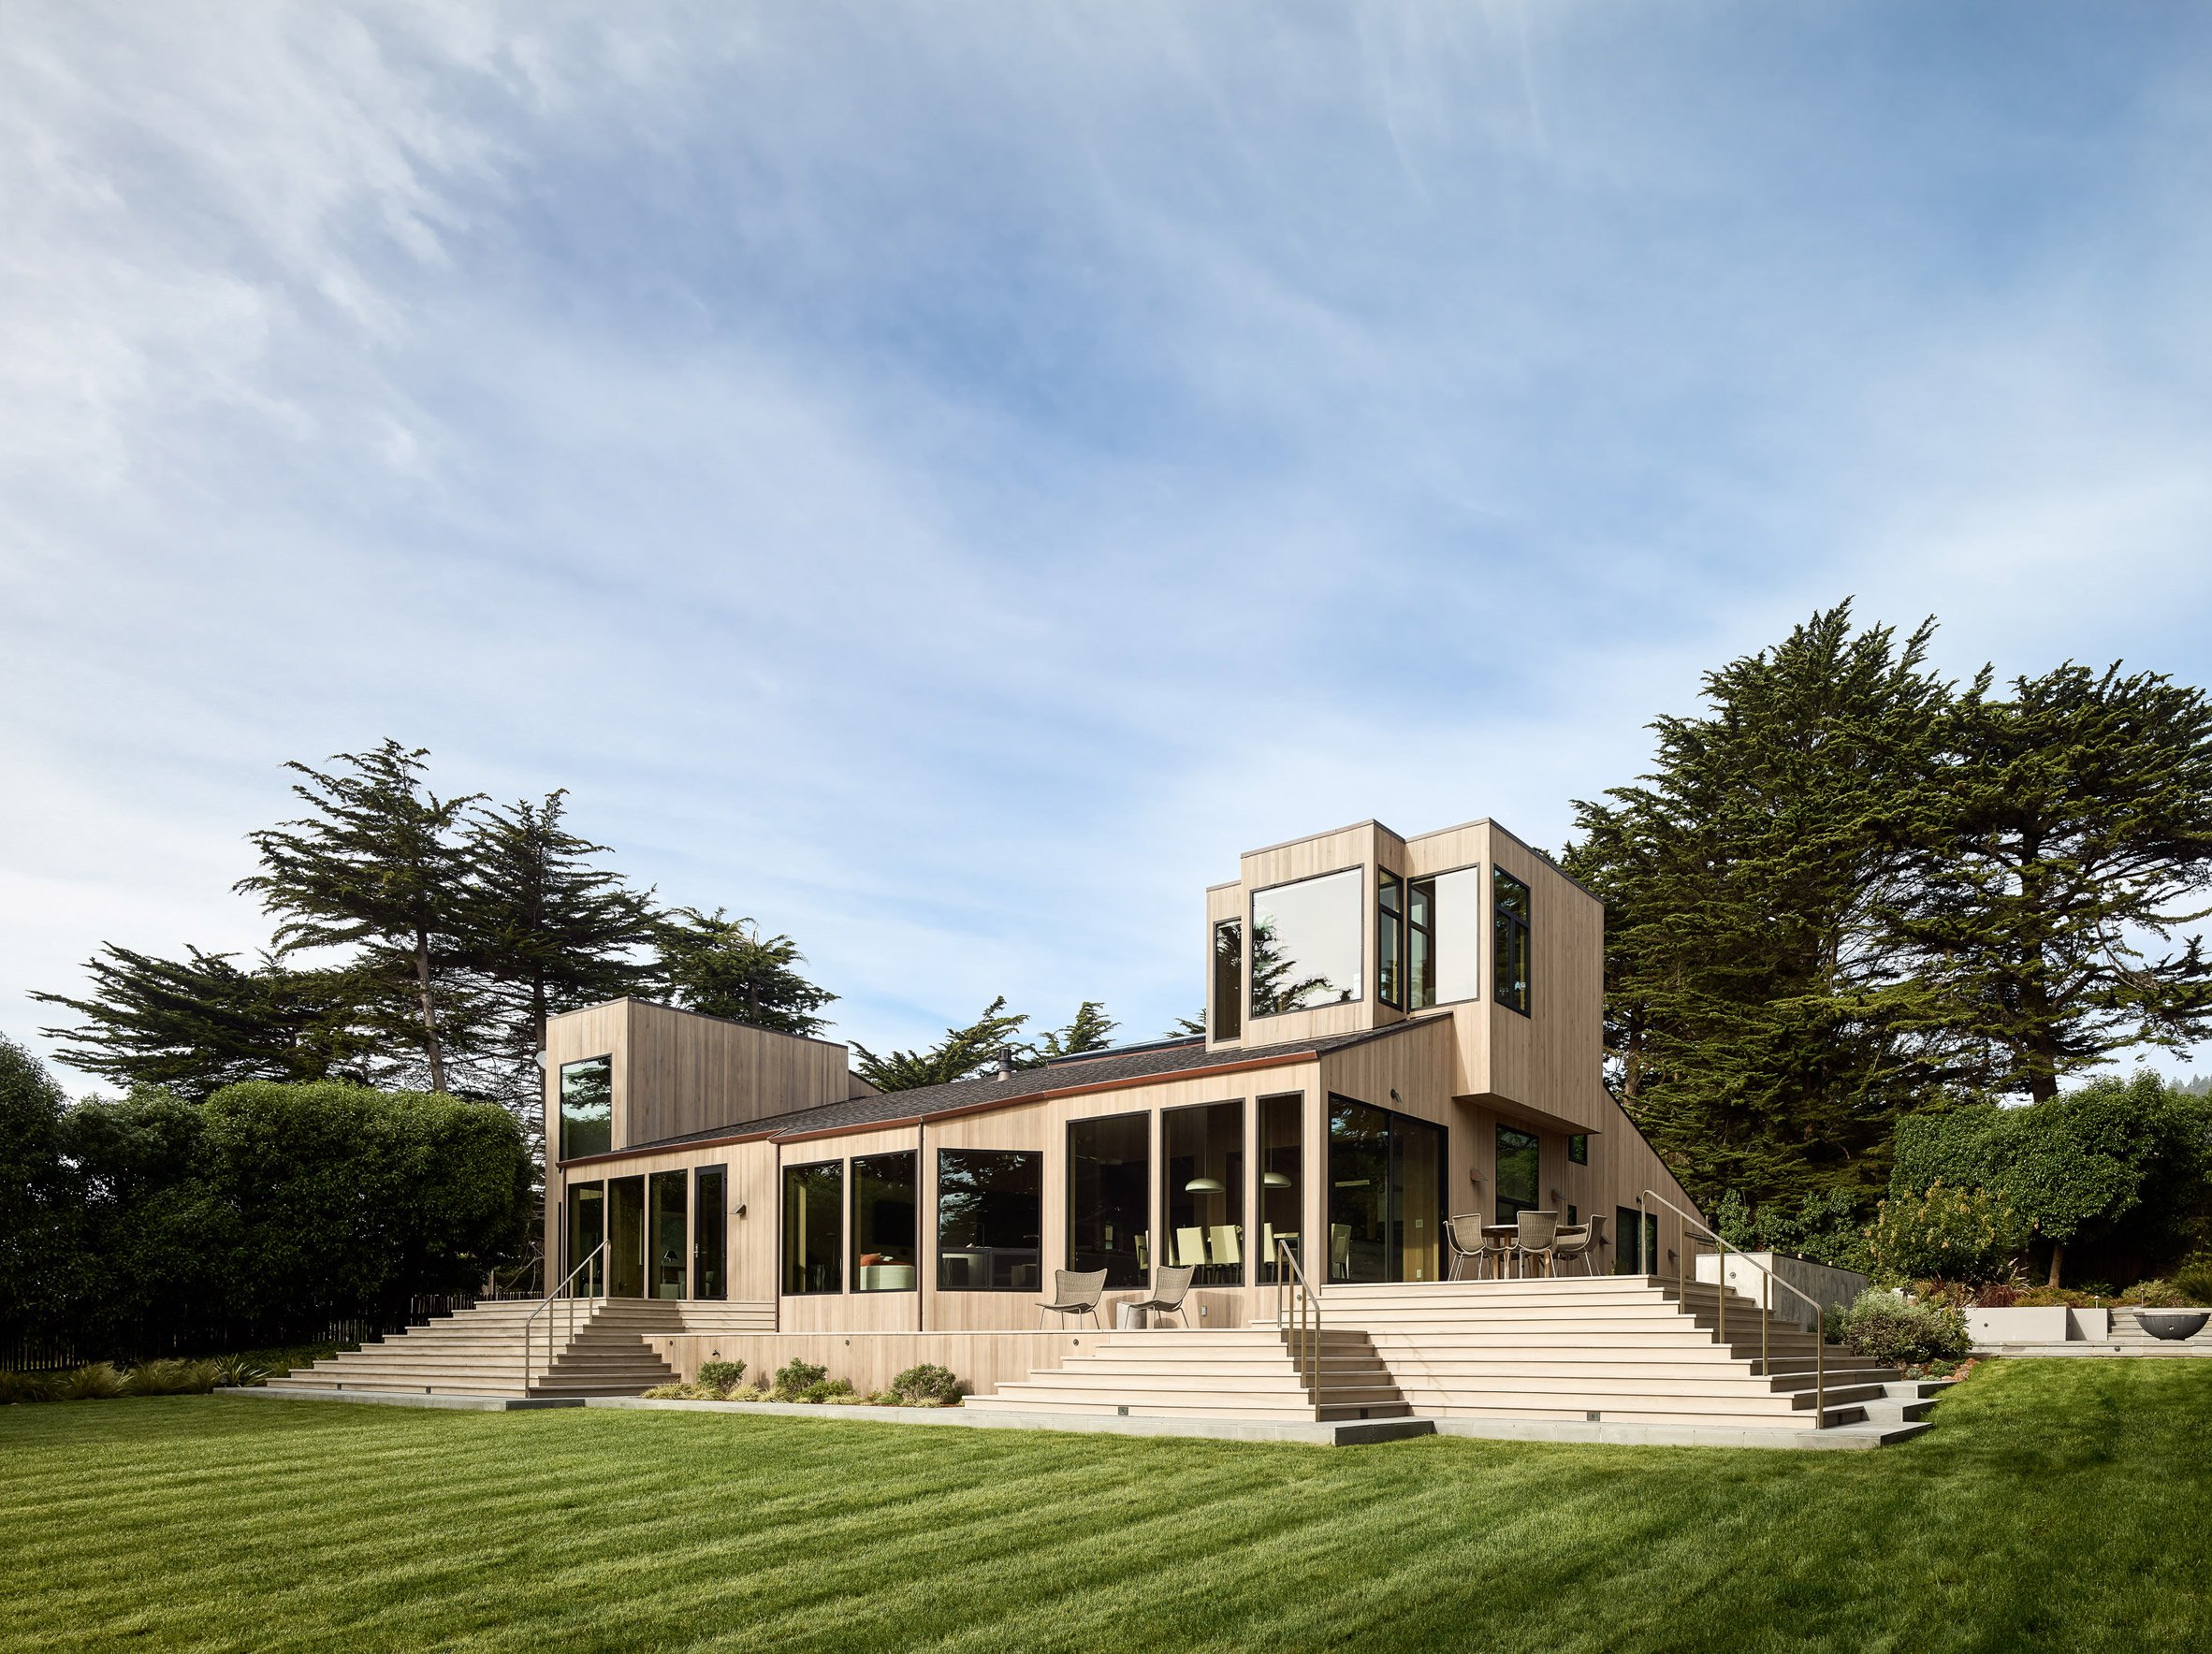 Butler Armsden overhauls 1970s coastal home in northern California